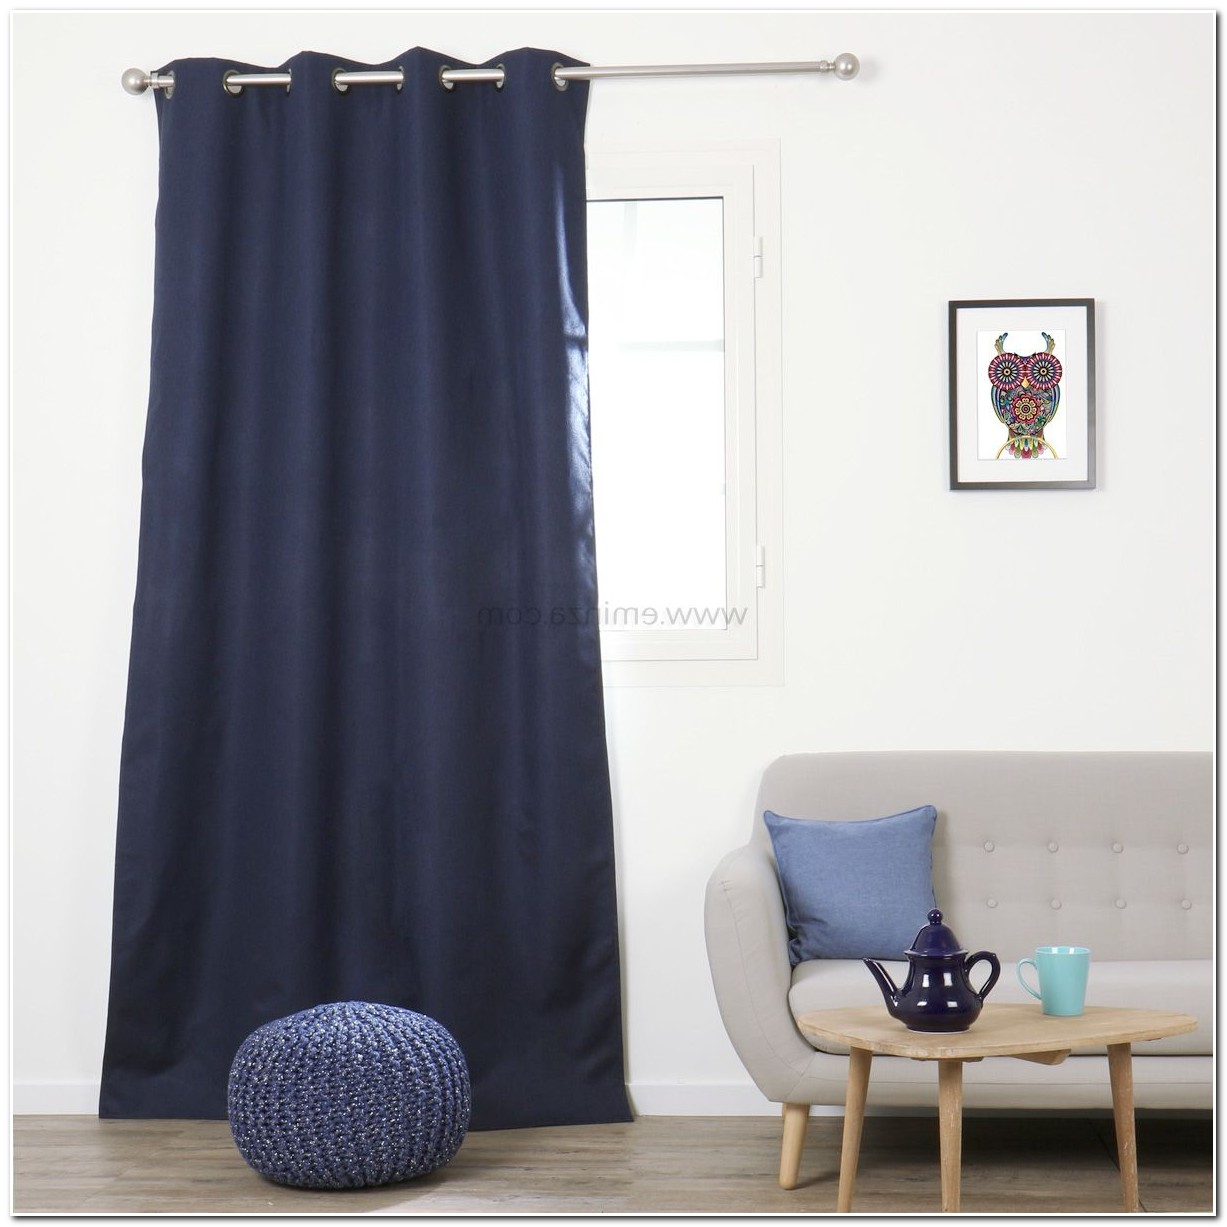 rideaux occultants bleu rideaux occultants with rideaux occultants bleu top ikea rideaux. Black Bedroom Furniture Sets. Home Design Ideas